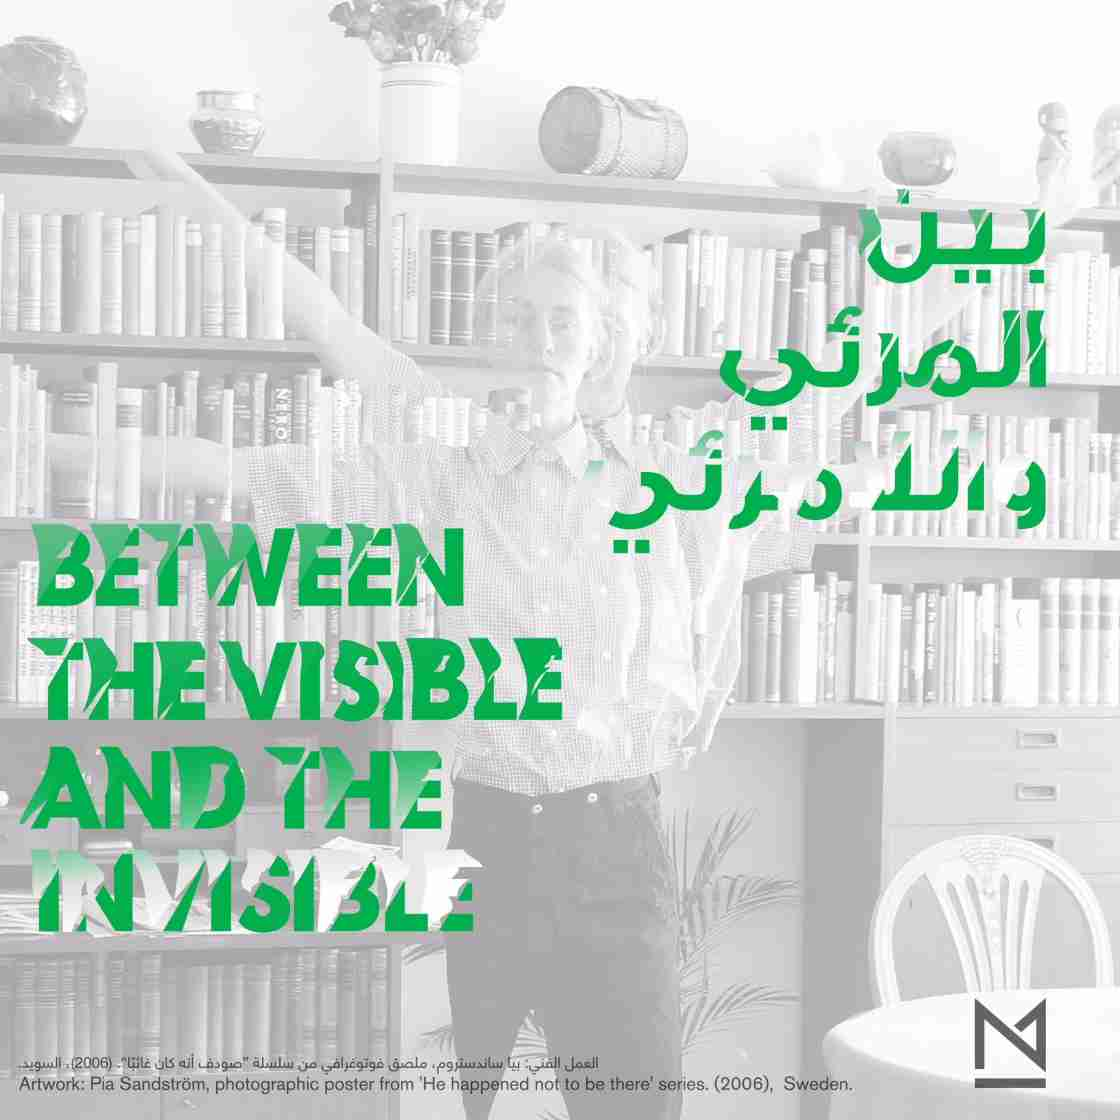 Between the Visible and Invisible